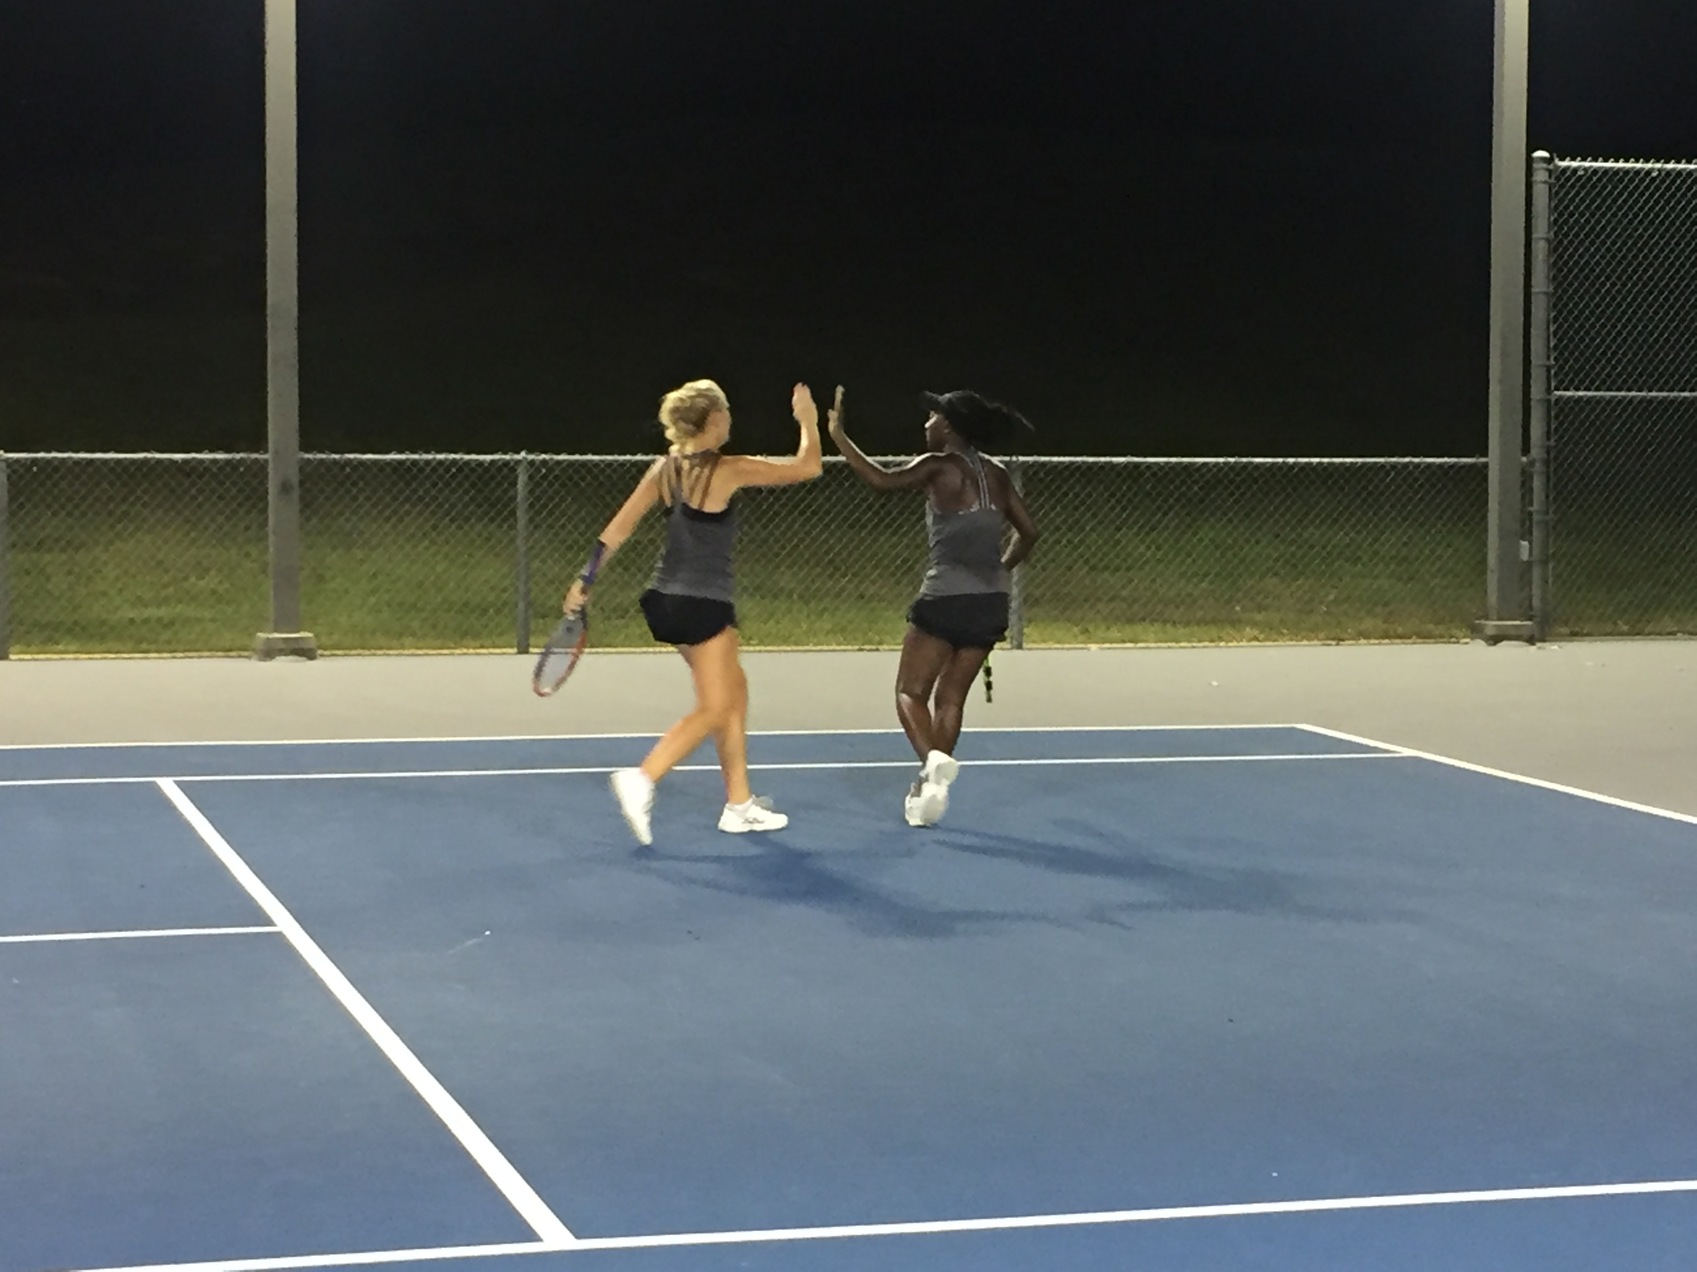 Kangaroo Tennis Closes Out Women's ITA's With Big Wins